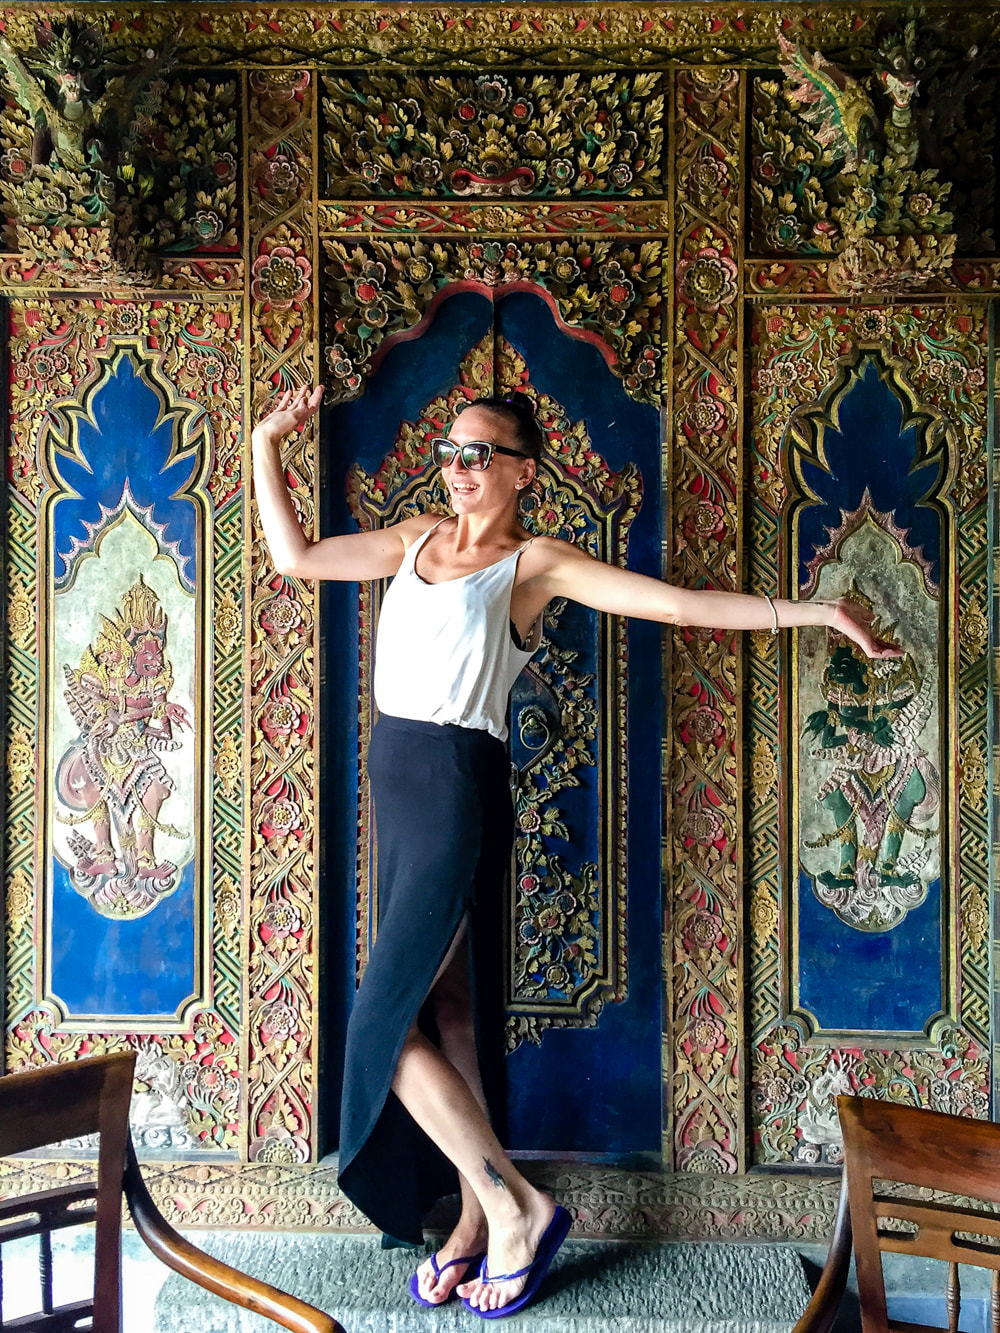 The opulent doorway featured in the Lobby. Dwaraka, the Royal Villas, Ubud, Bali, Indonesia.